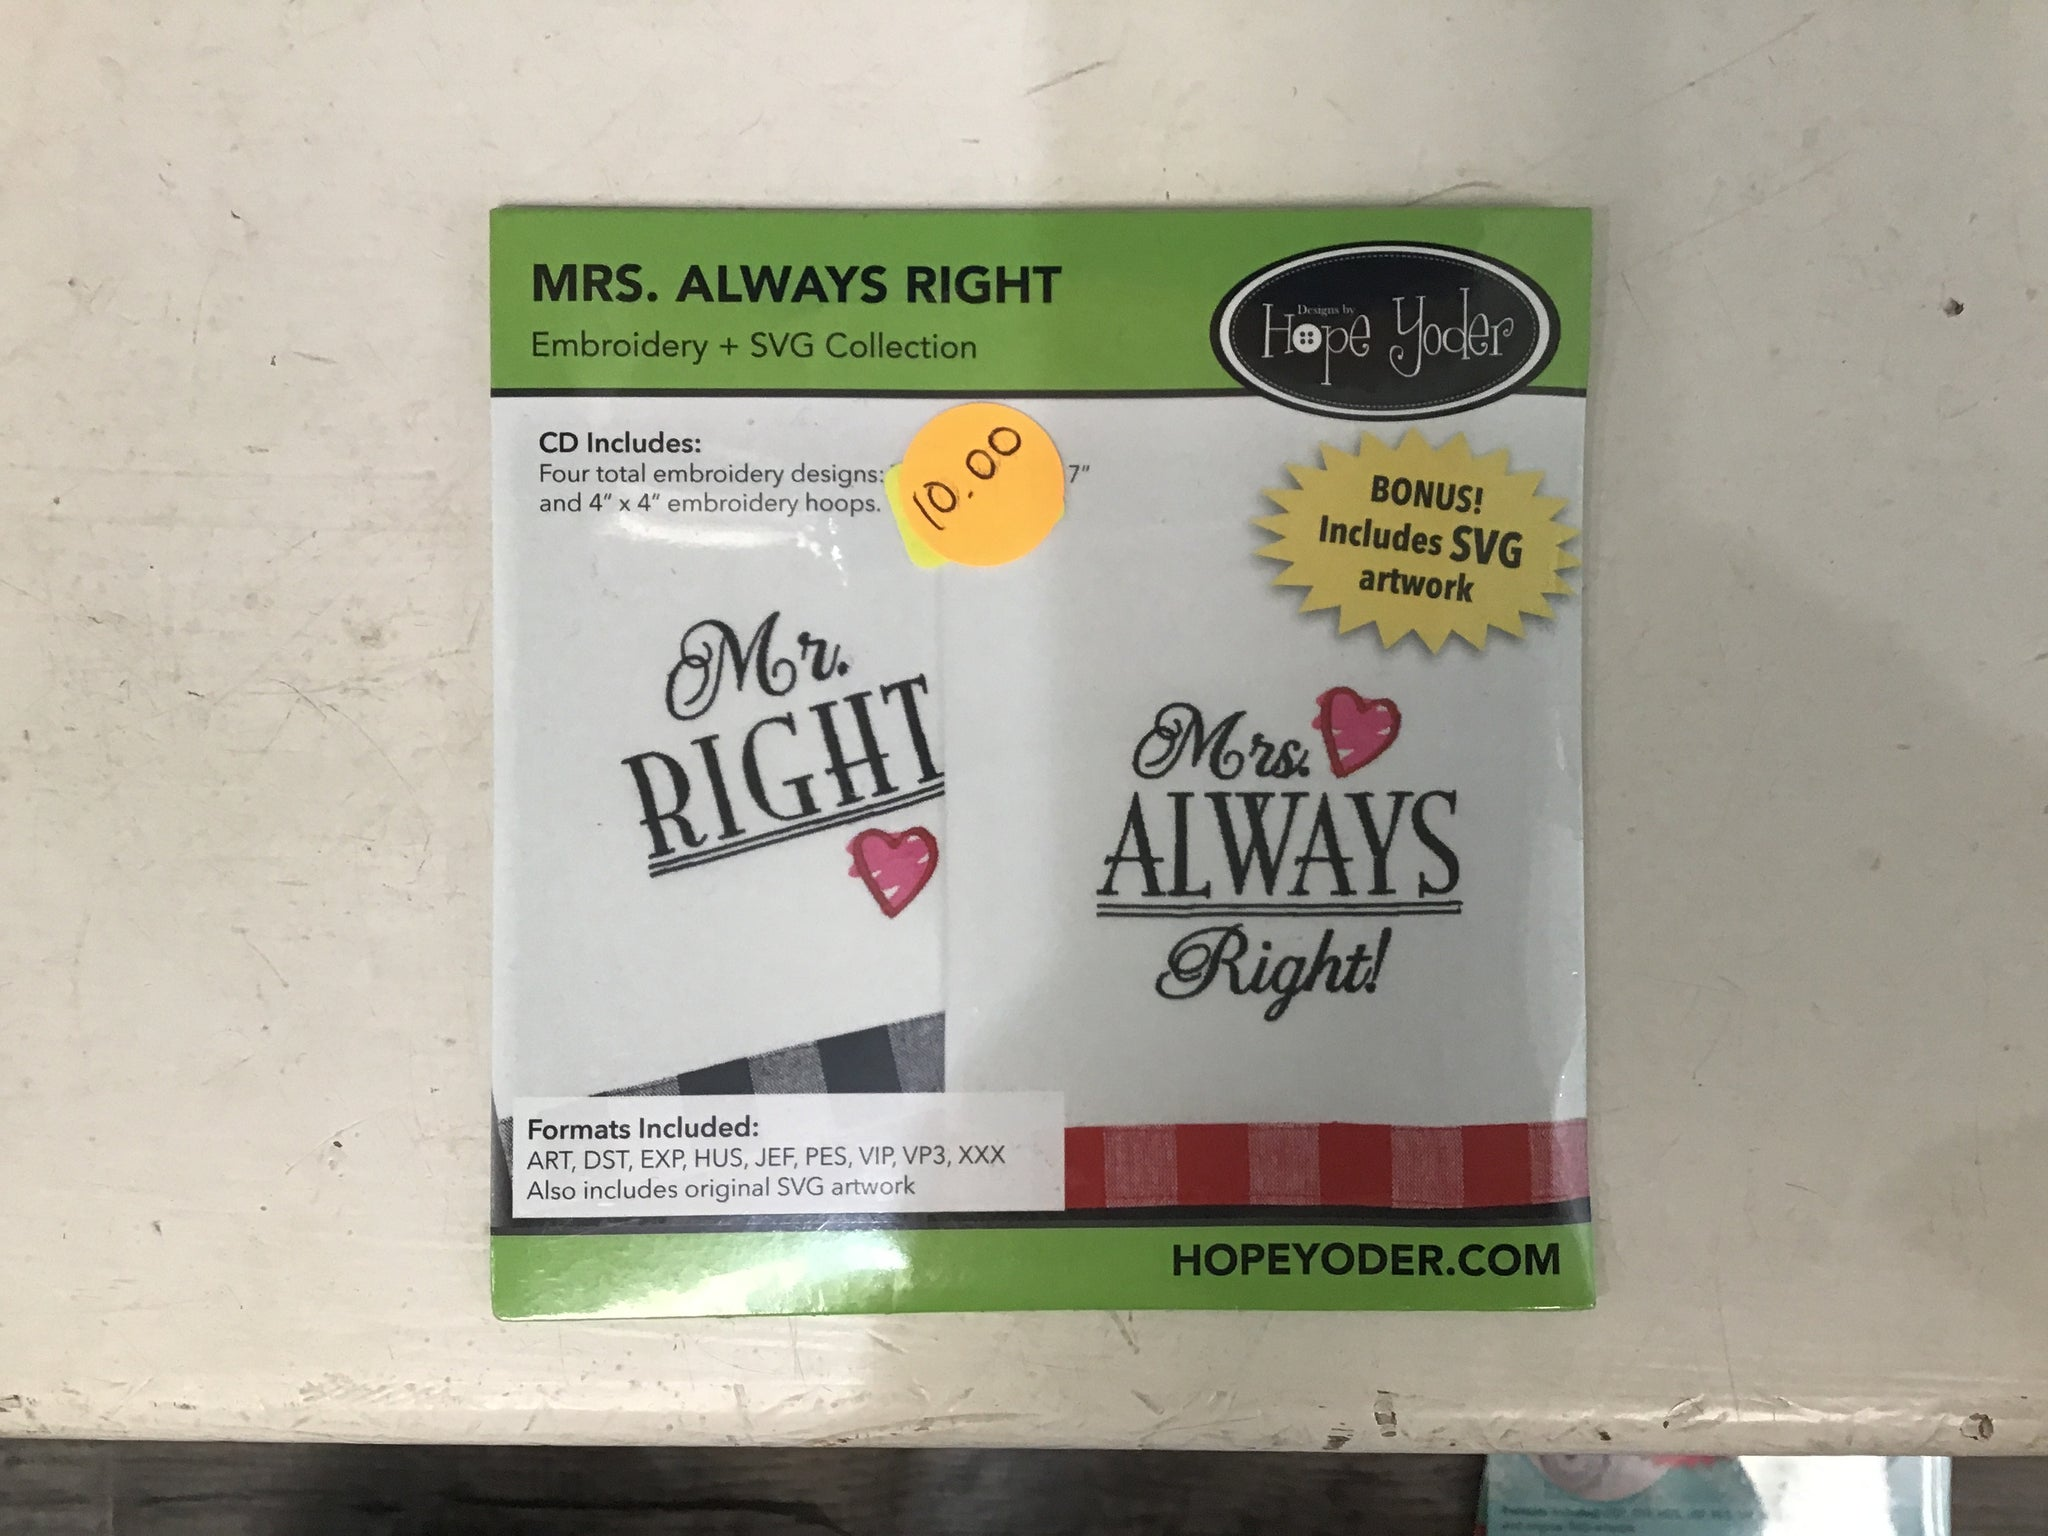 Mrs. always right embroidery collection